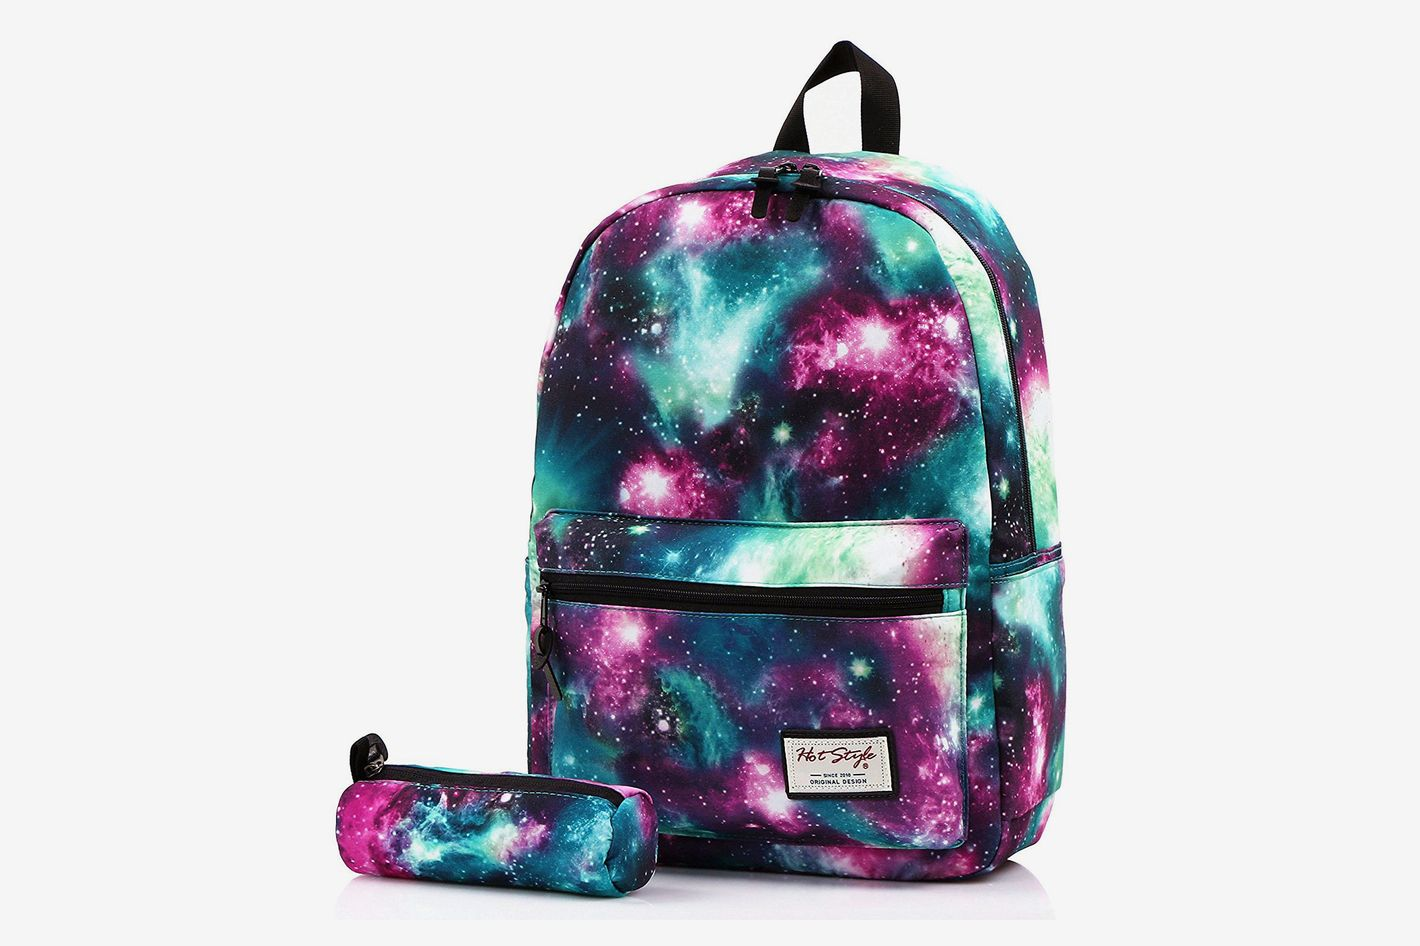 e4d7da951b4e HotStyle Trendymax Galaxy Backpack